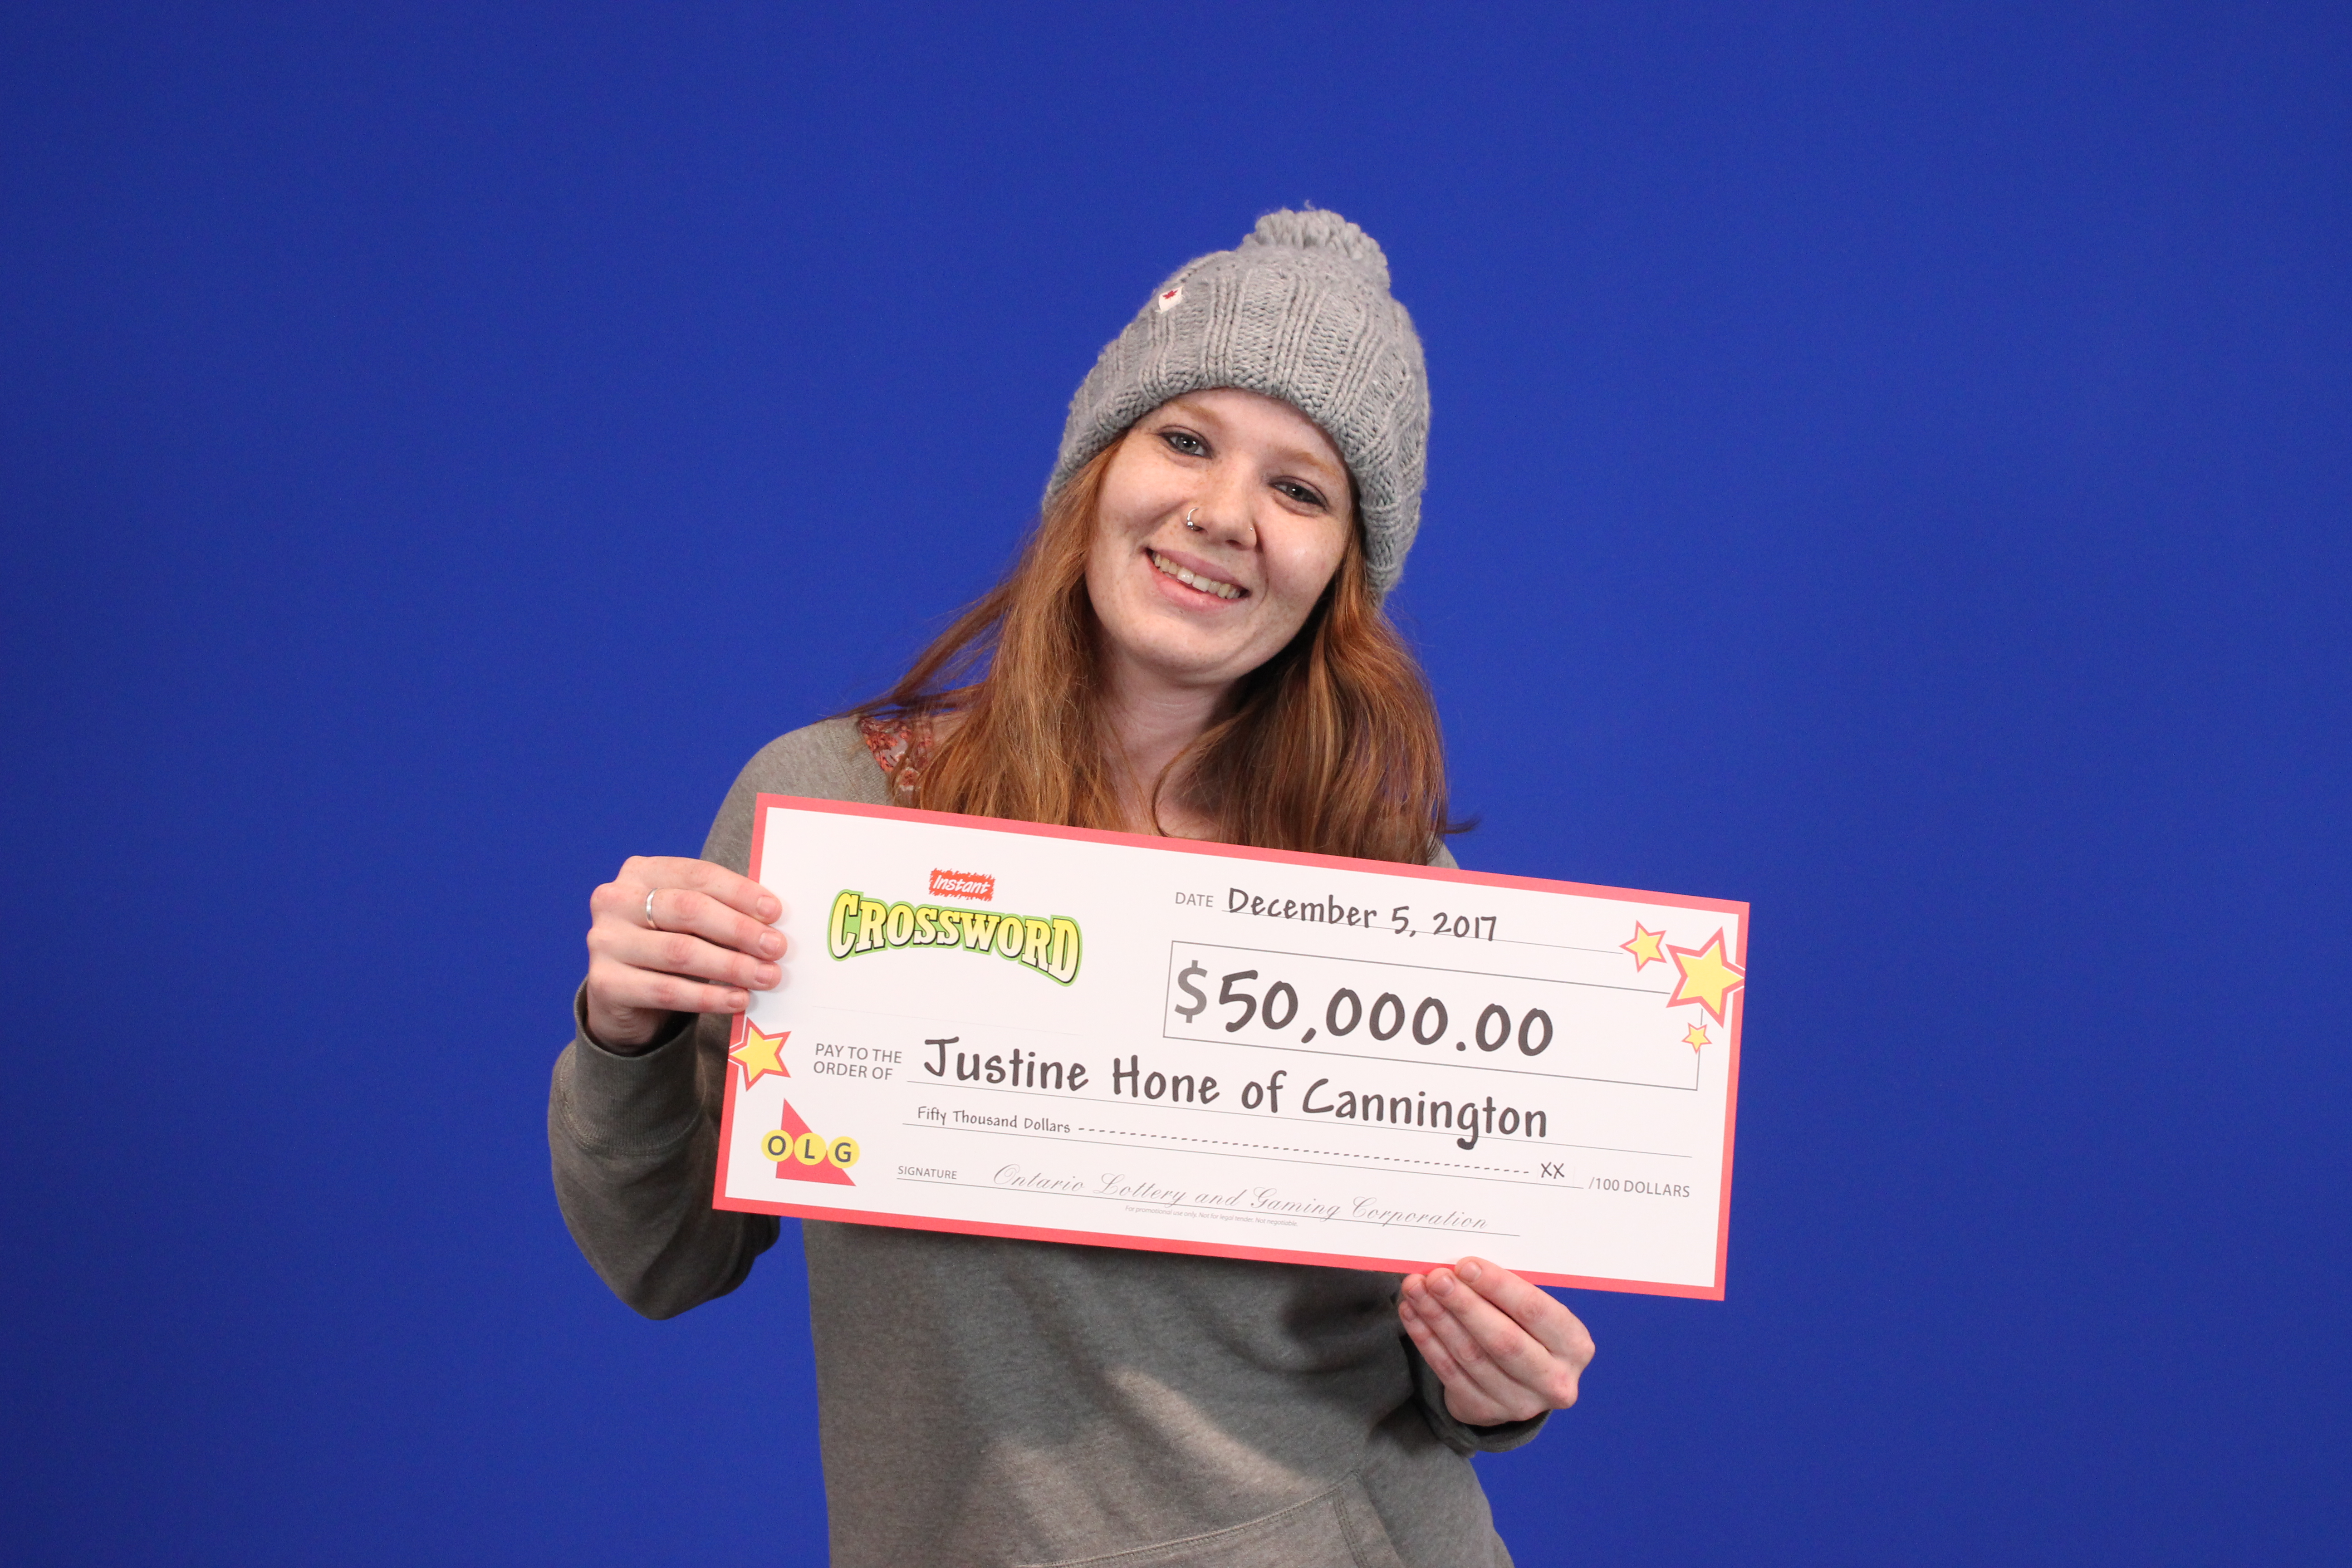 Cannington resident claims $50,000 lotto prize